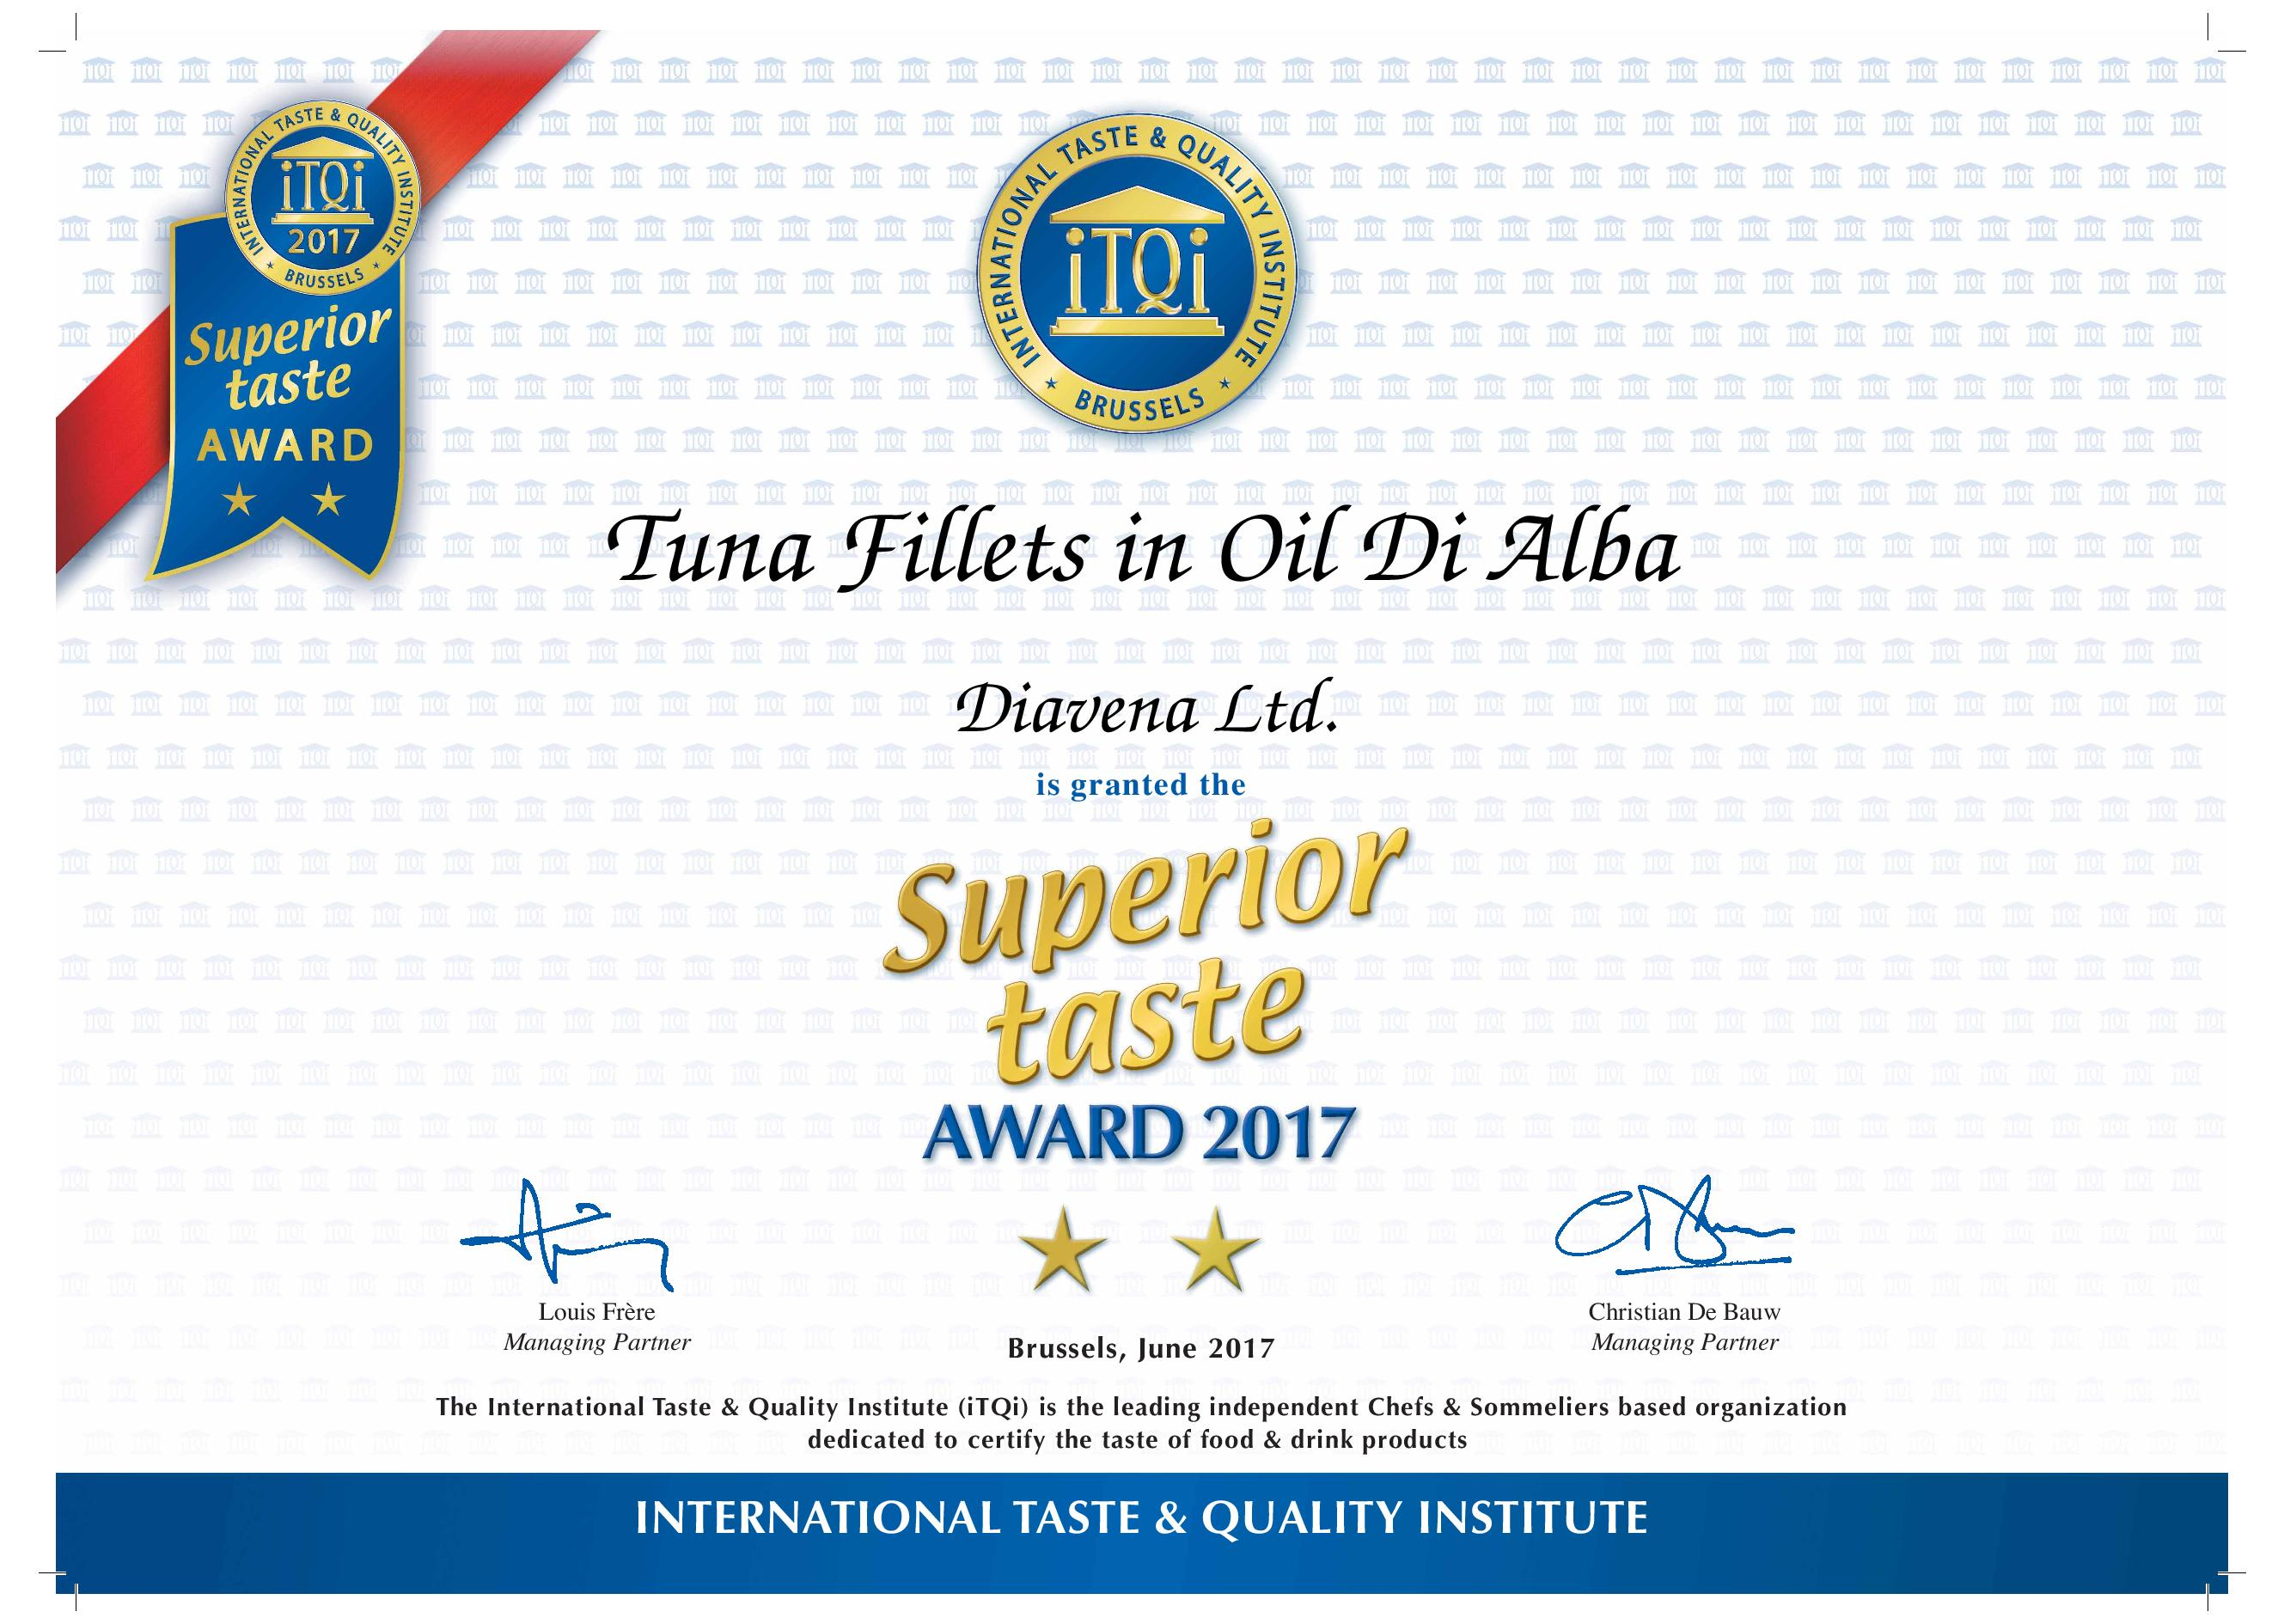 Fileuri de ton în Oil Di Alba - Premiul de gust superior - 2 Golden Stars